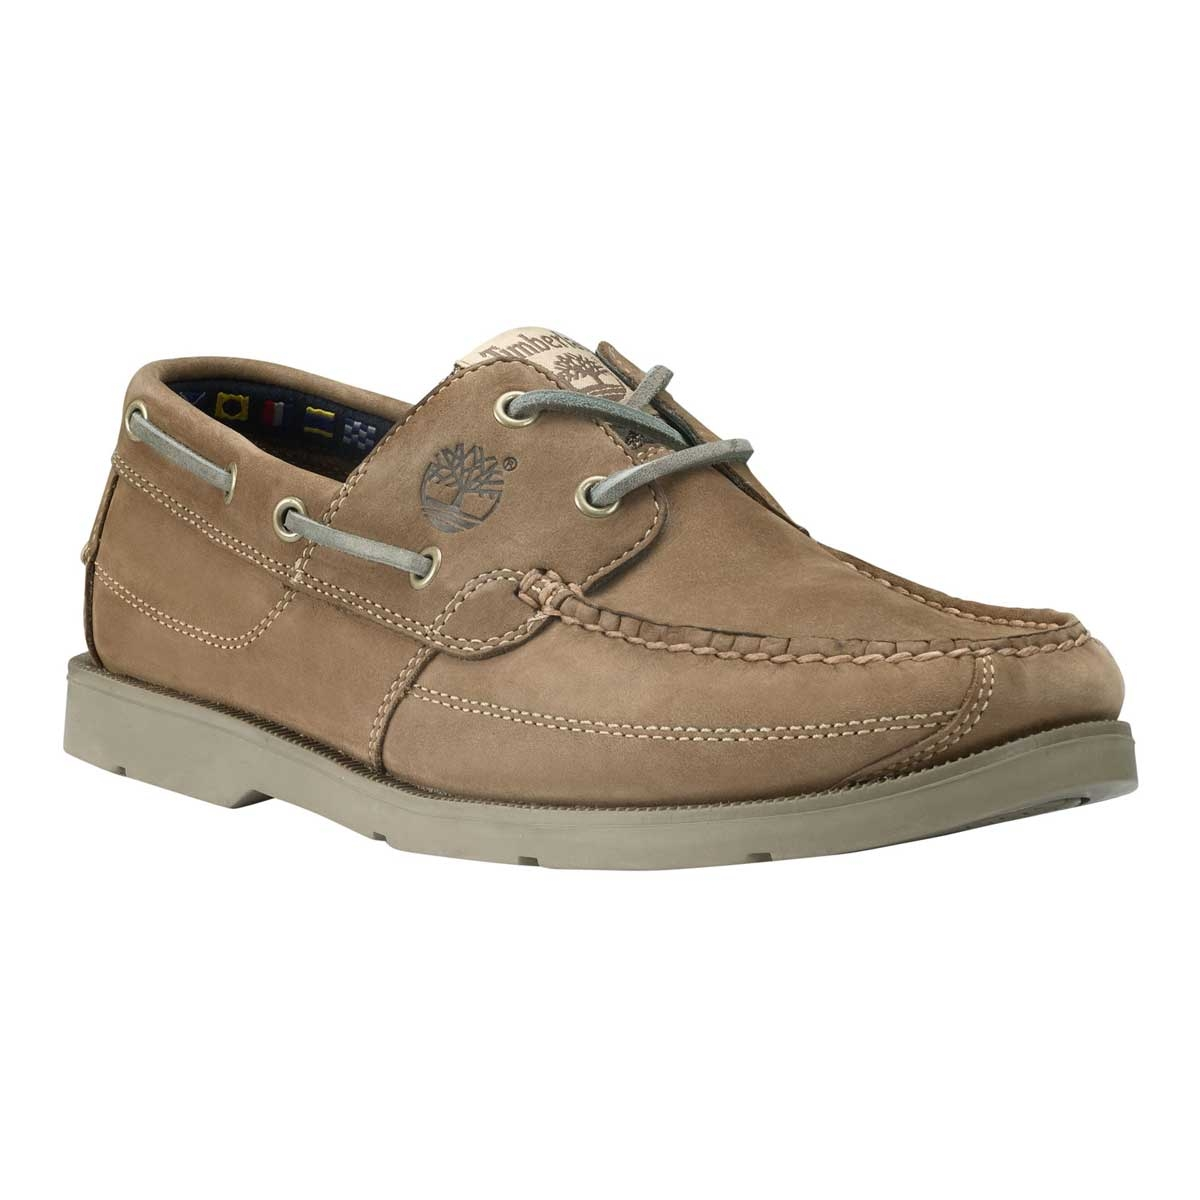 Ek Kia Wah Bay FTM Hs, Men Boat Shoes Timberland